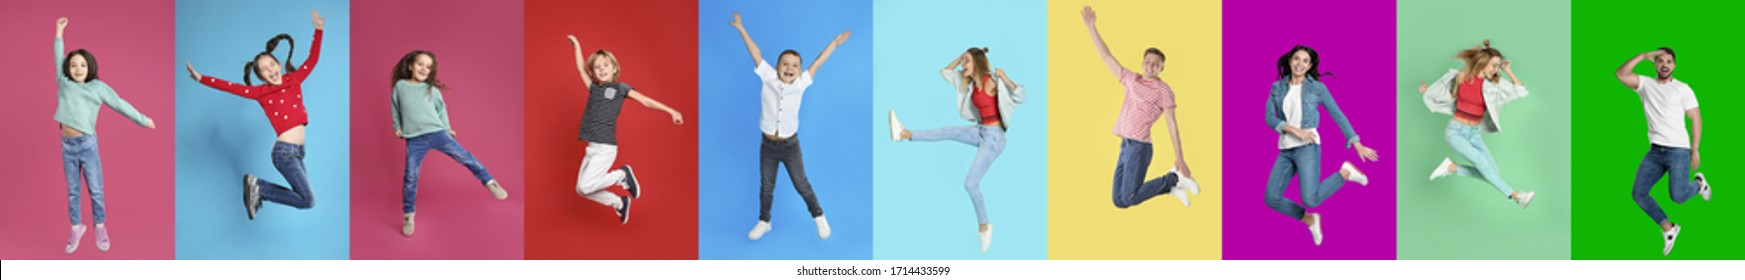 Collage of emotional people jumping on different color backgrounds. Banner design